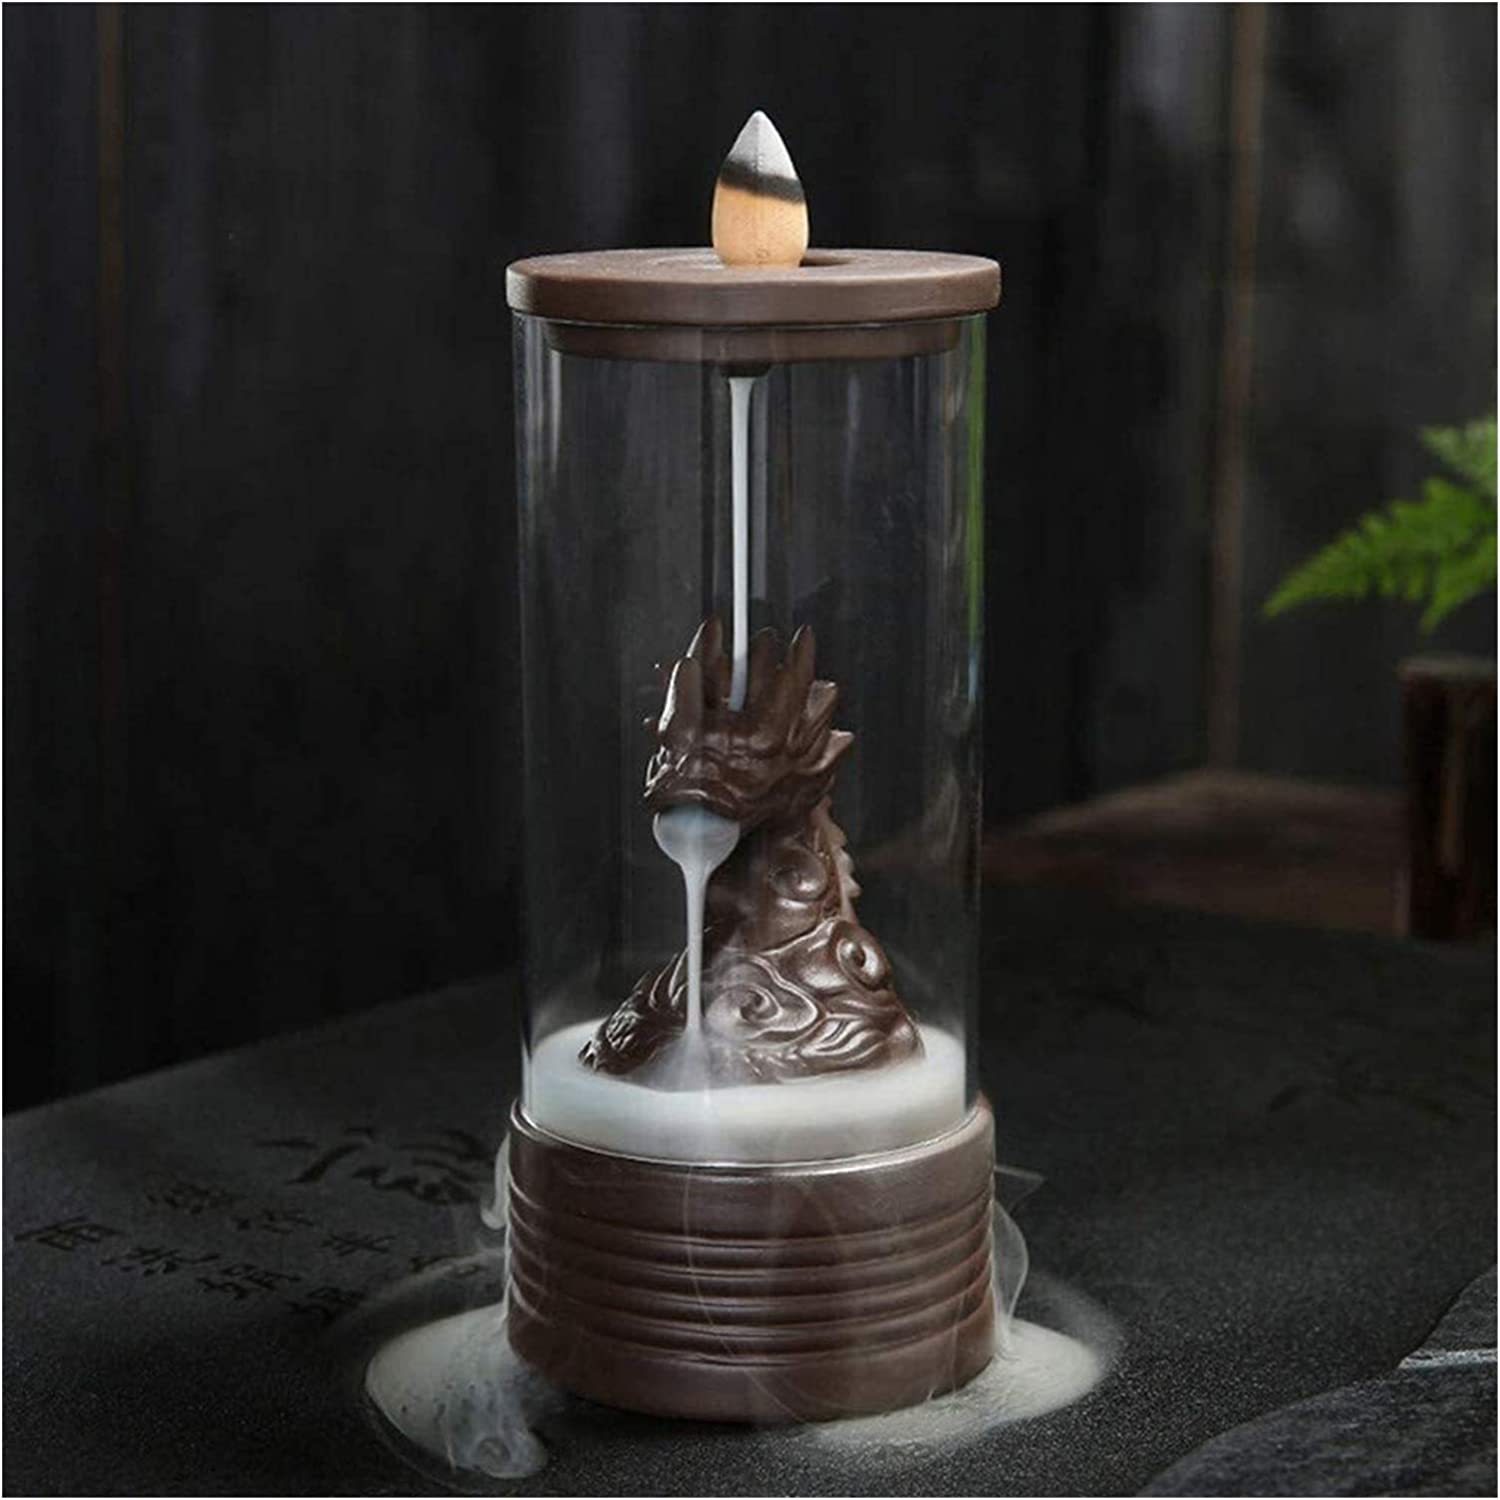 Incense Holders Ceramic Ranking TOP10 Backflow Waterfall Online limited product Dragon Spit